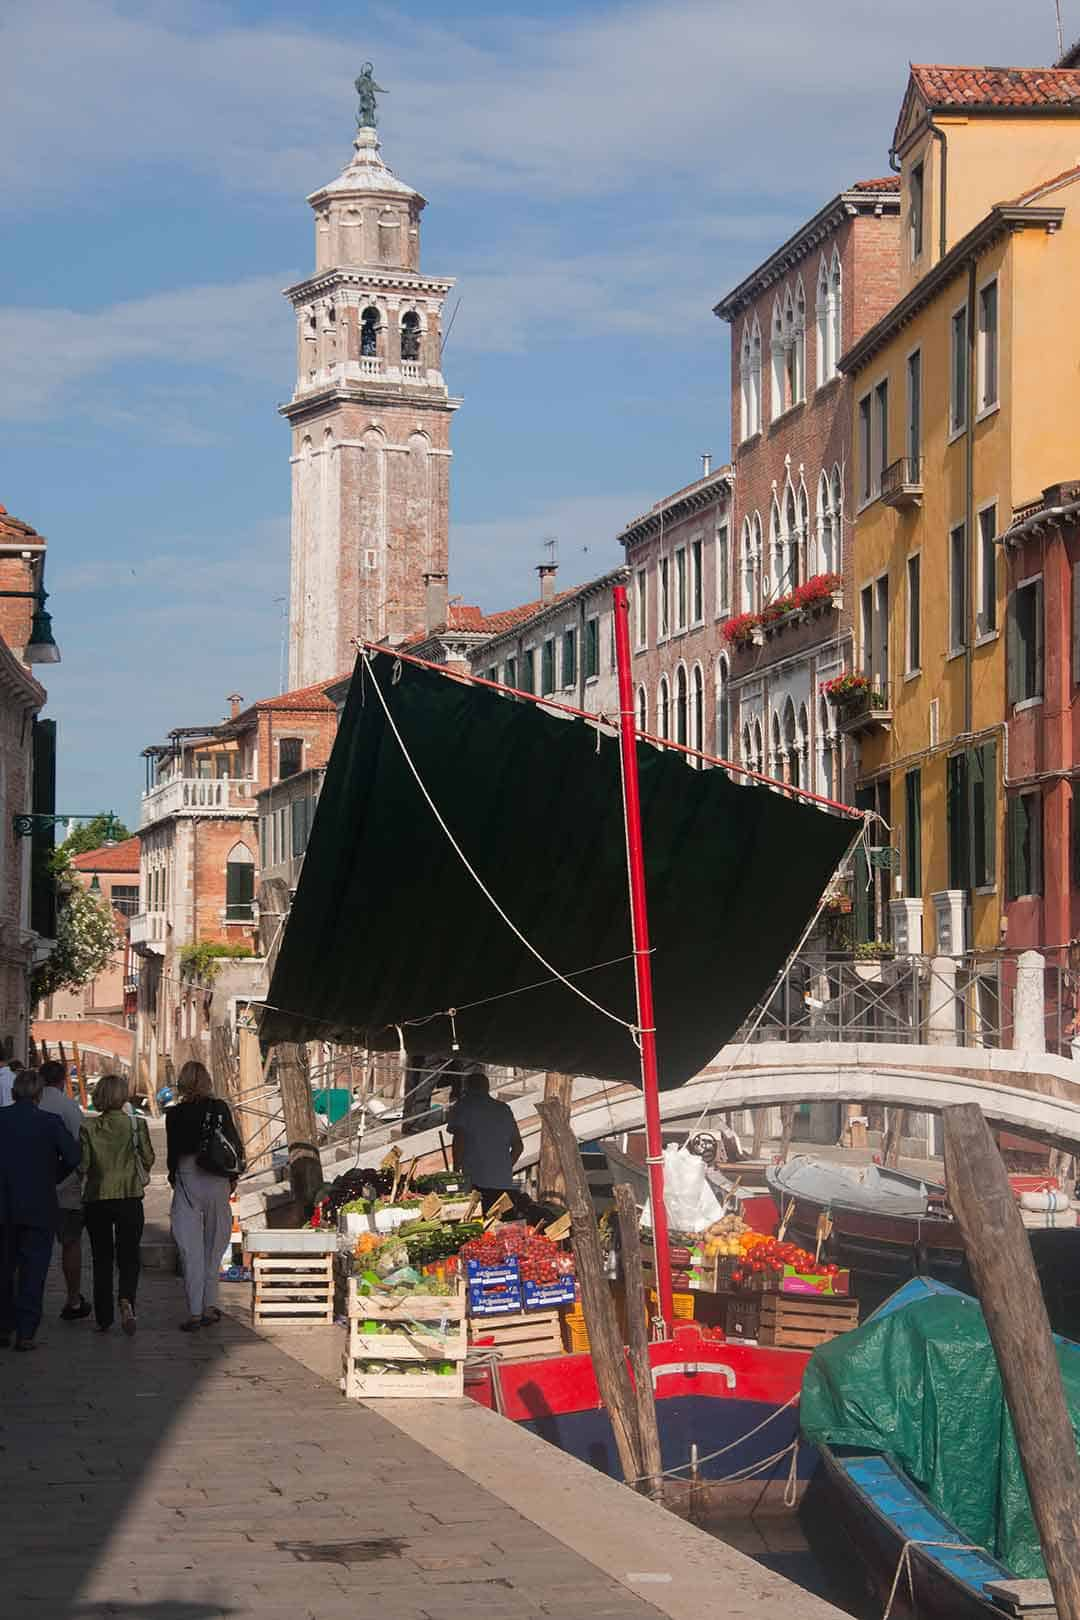 Image of fruit and vegetable stall on boat in canal in Venice Italy